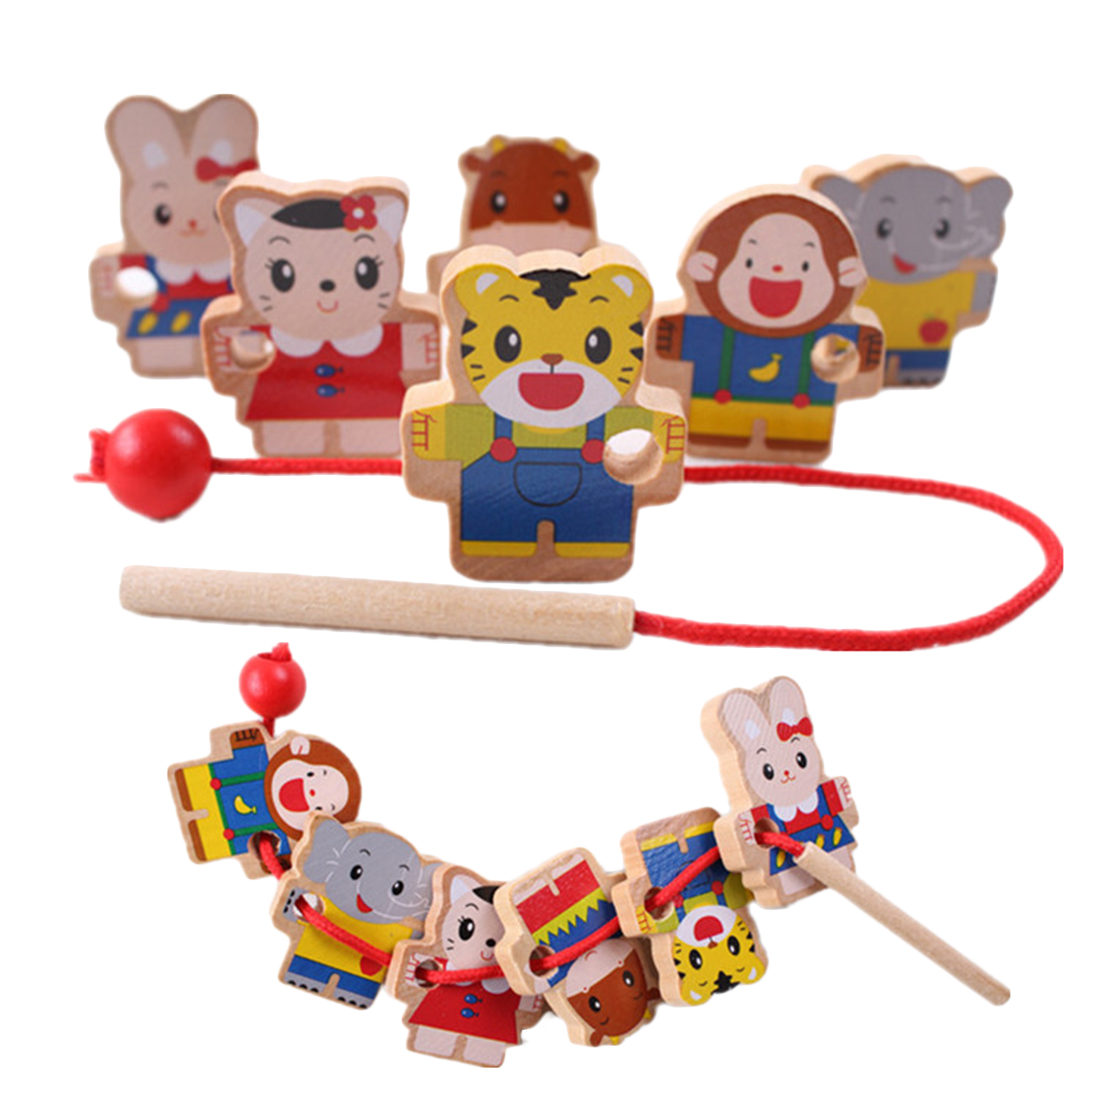 Wooden Toys Baby DIY Toy Cartoon Animal Stringing Threading Wooden Beads Toy Monterssori Educational For Baby Kids Children